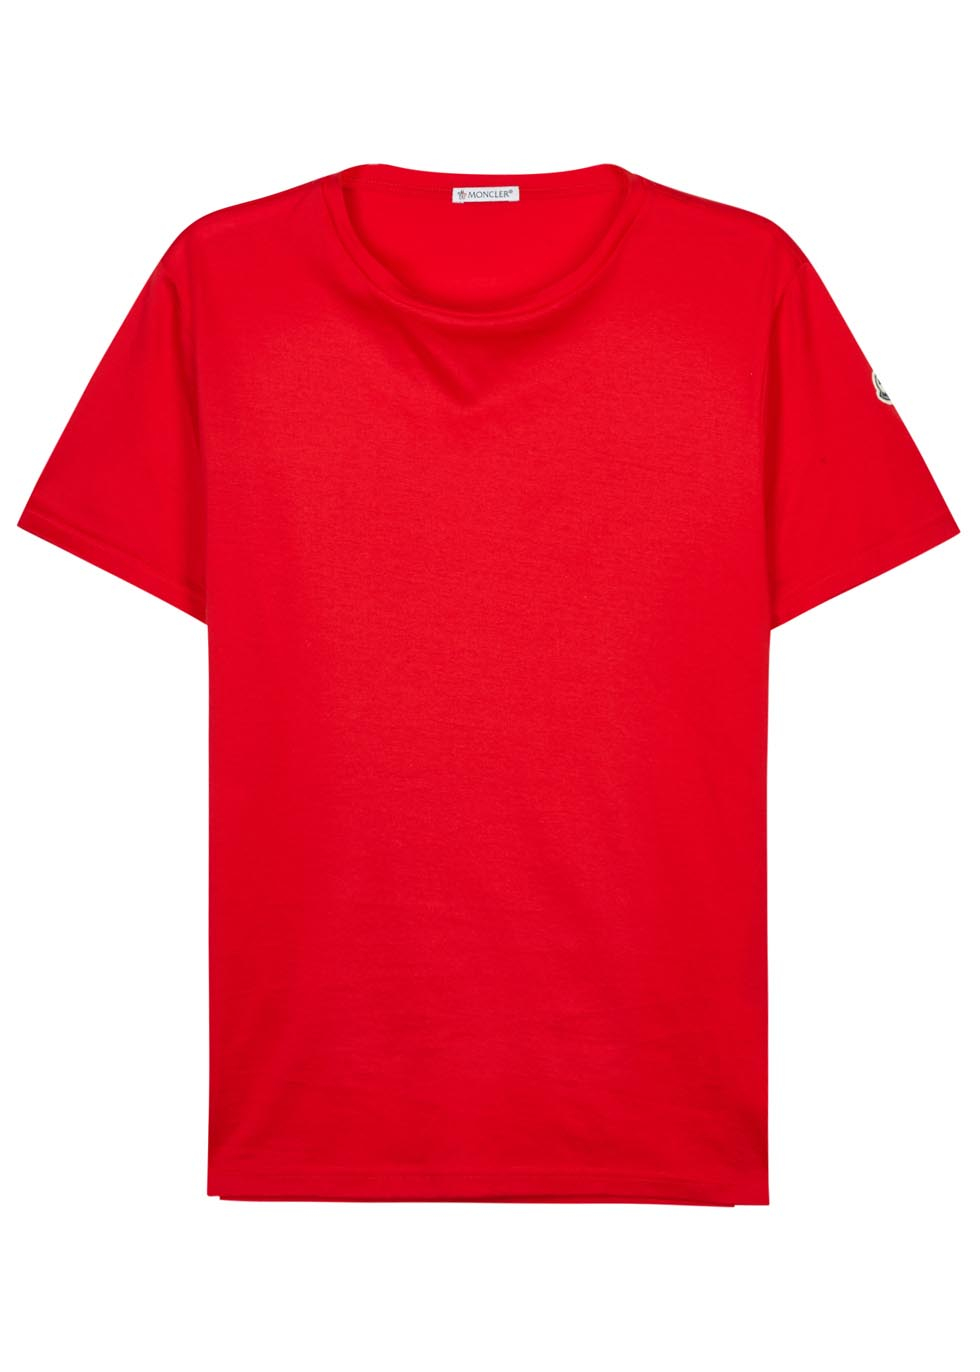 moncler red t shirt